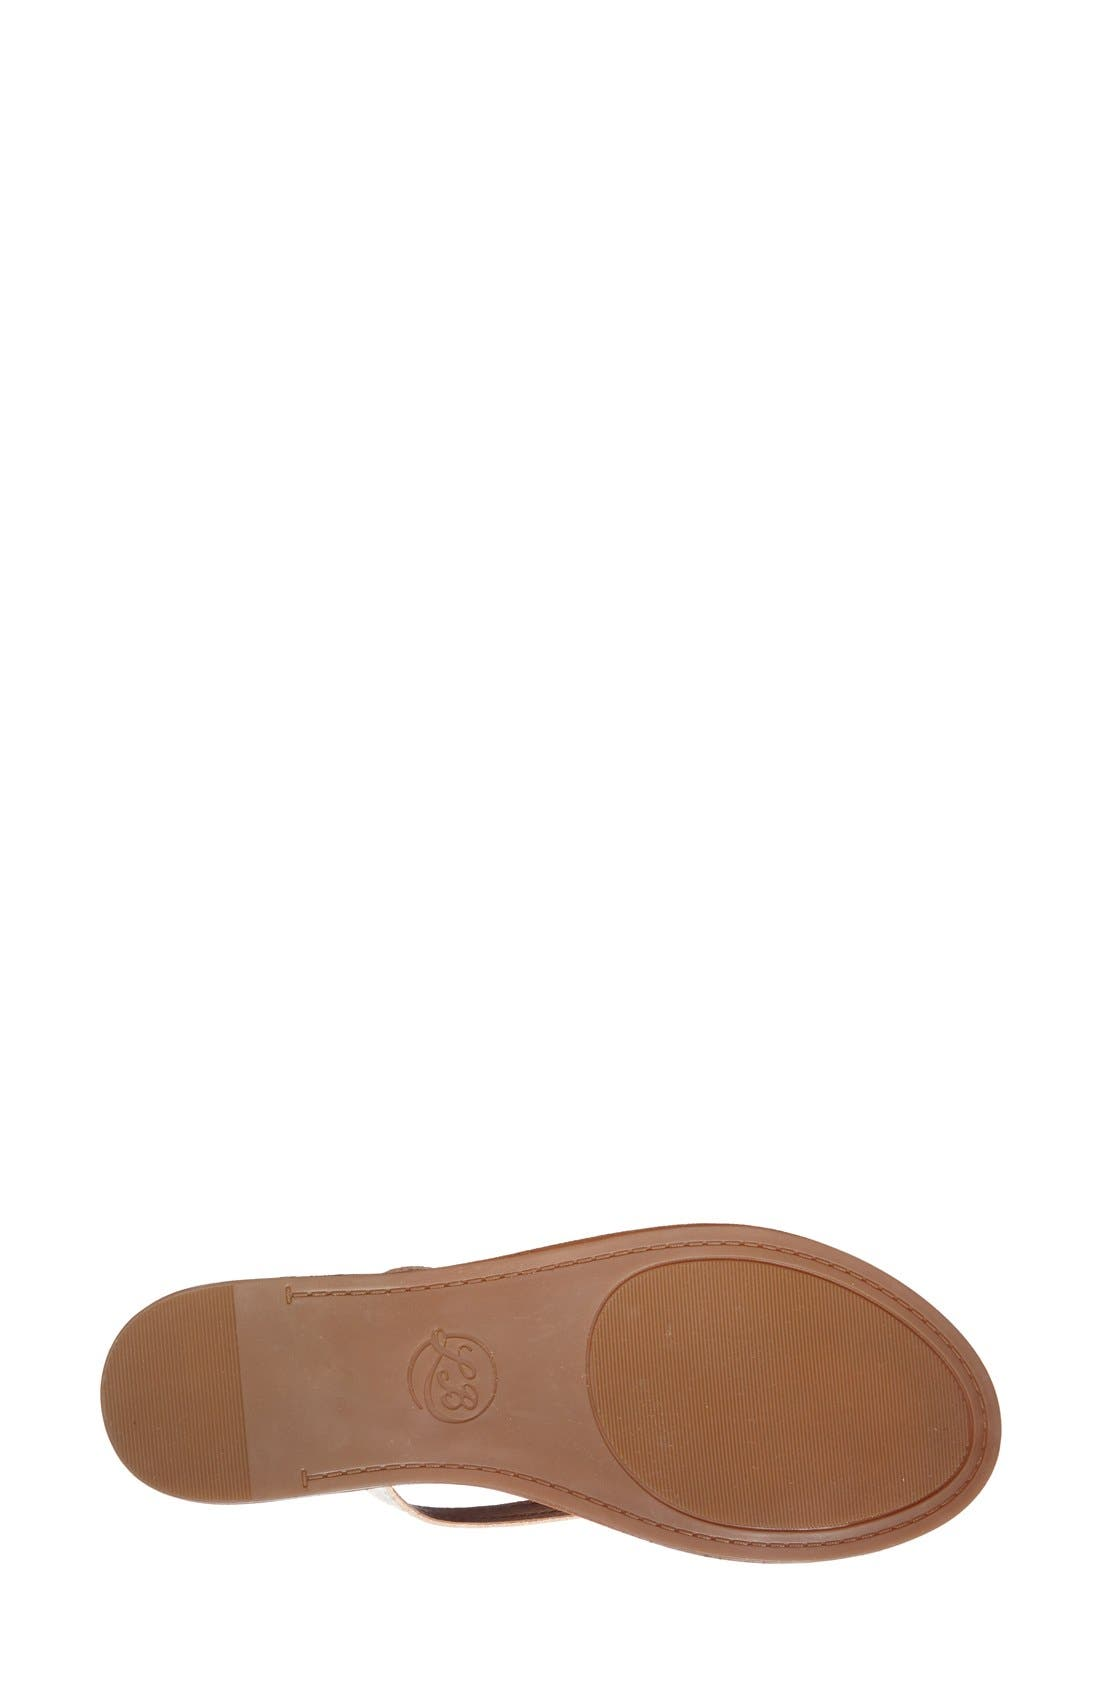 Alternate Image 4  - Lucky Brand 'Amberr' Leather Thong Sandal (Women)